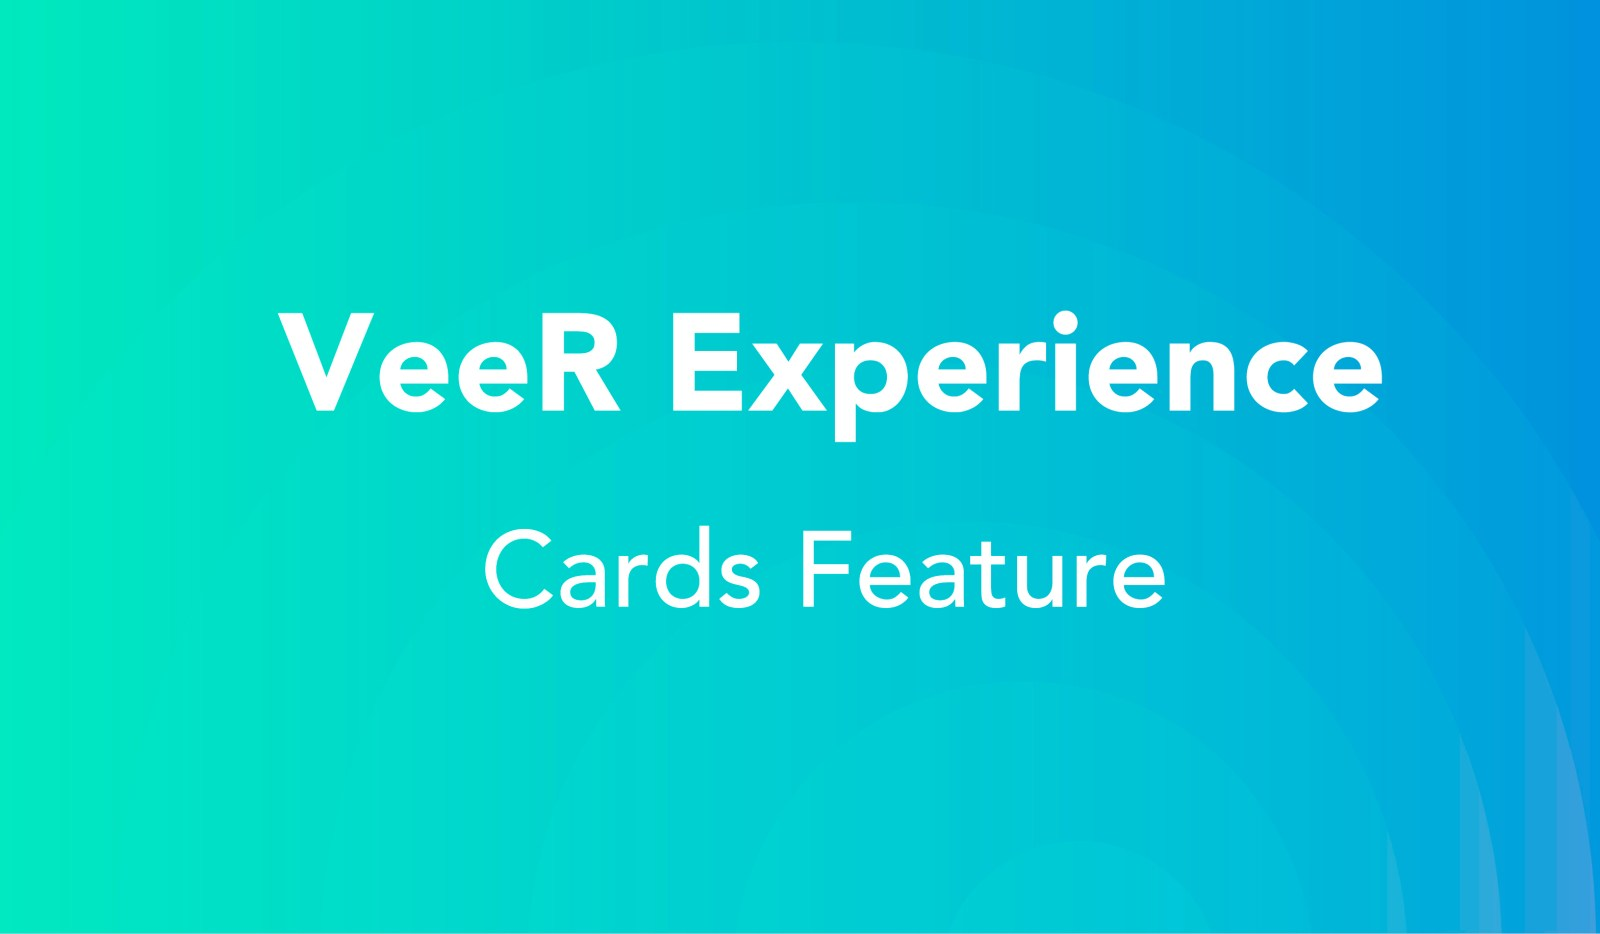 VeeR Experience Launches Cards Feature